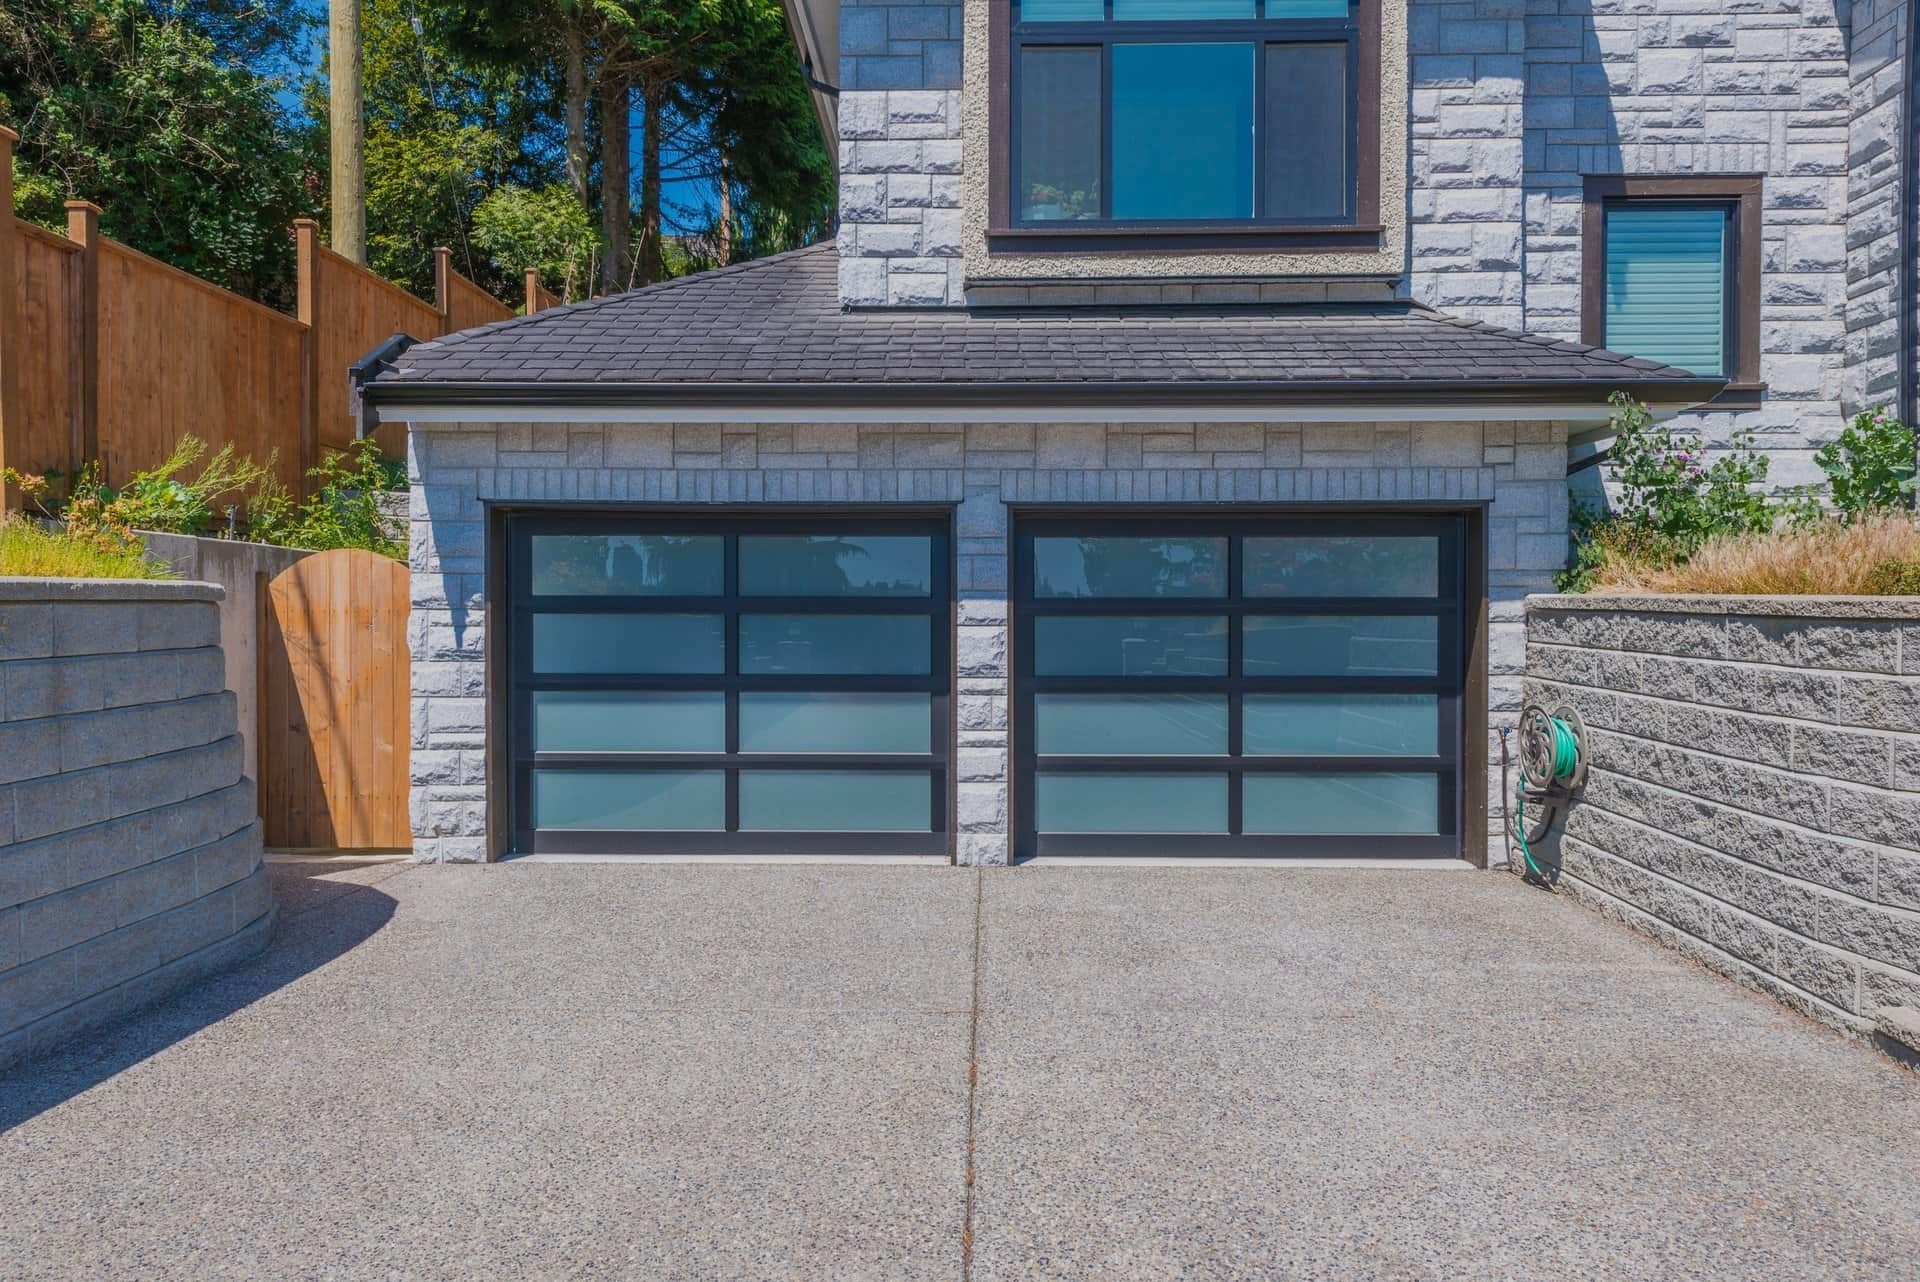 5 Reasons to Cover your Garage Door and Frame with Aluminum